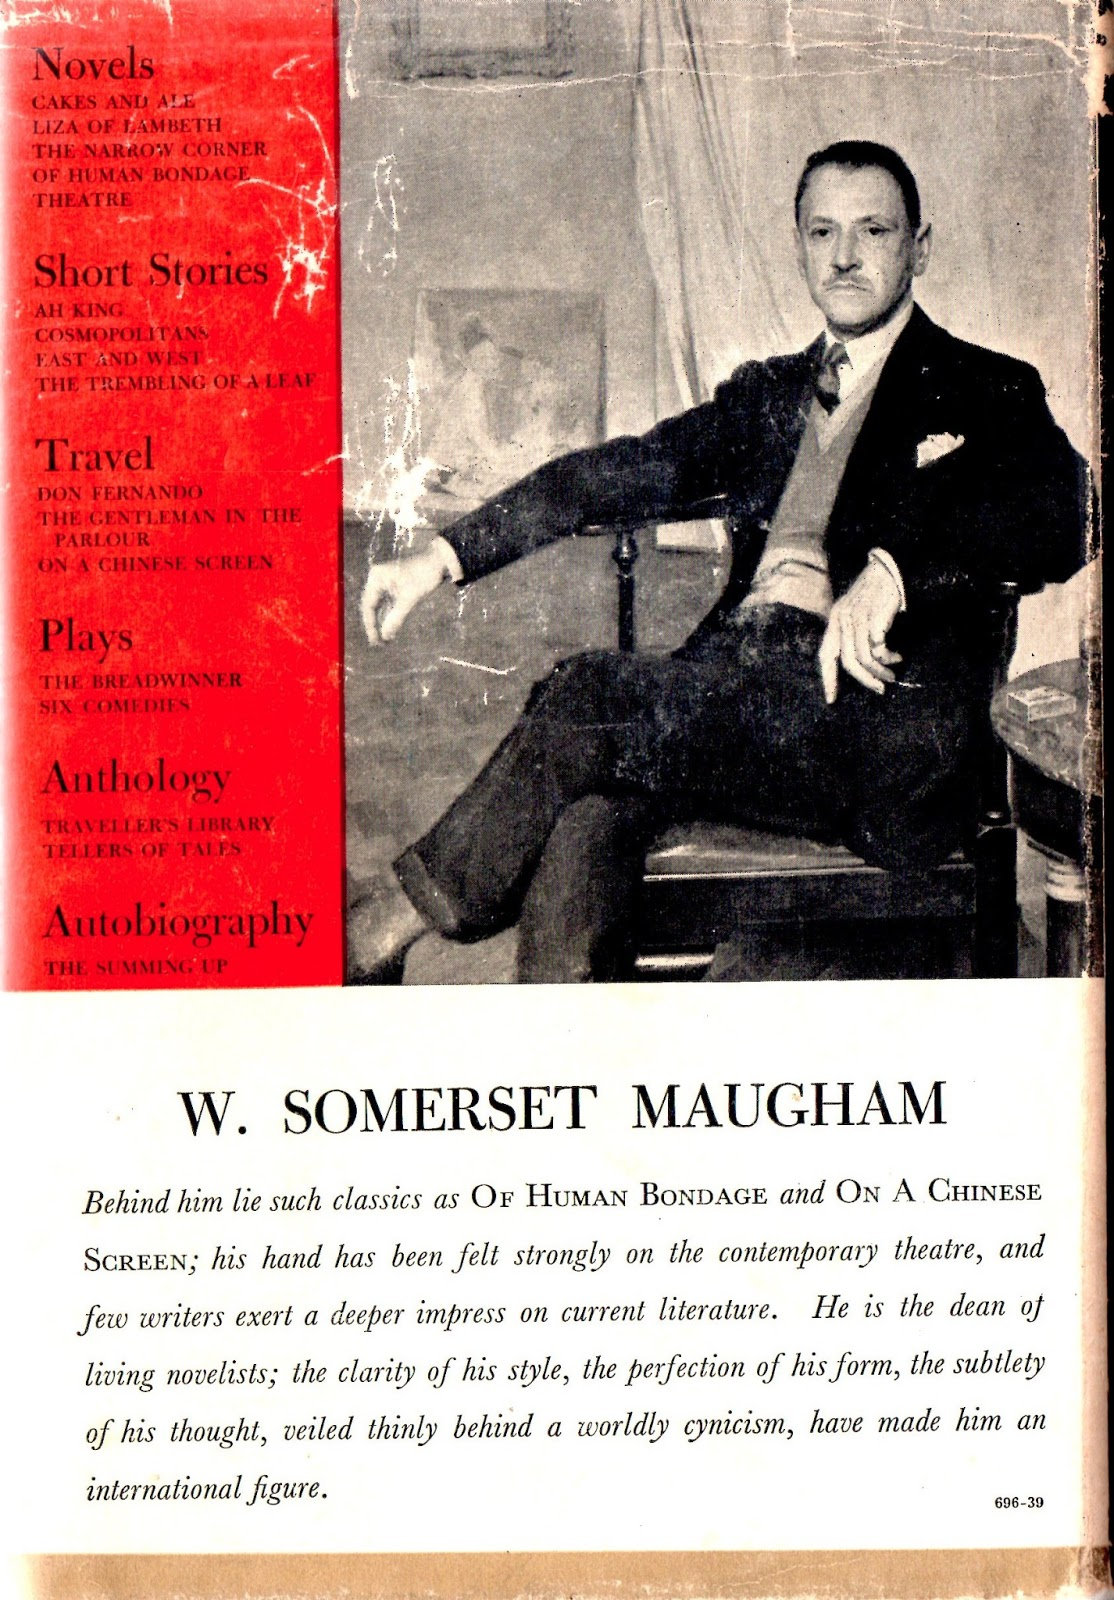 impressions of theatre by somerset maugham